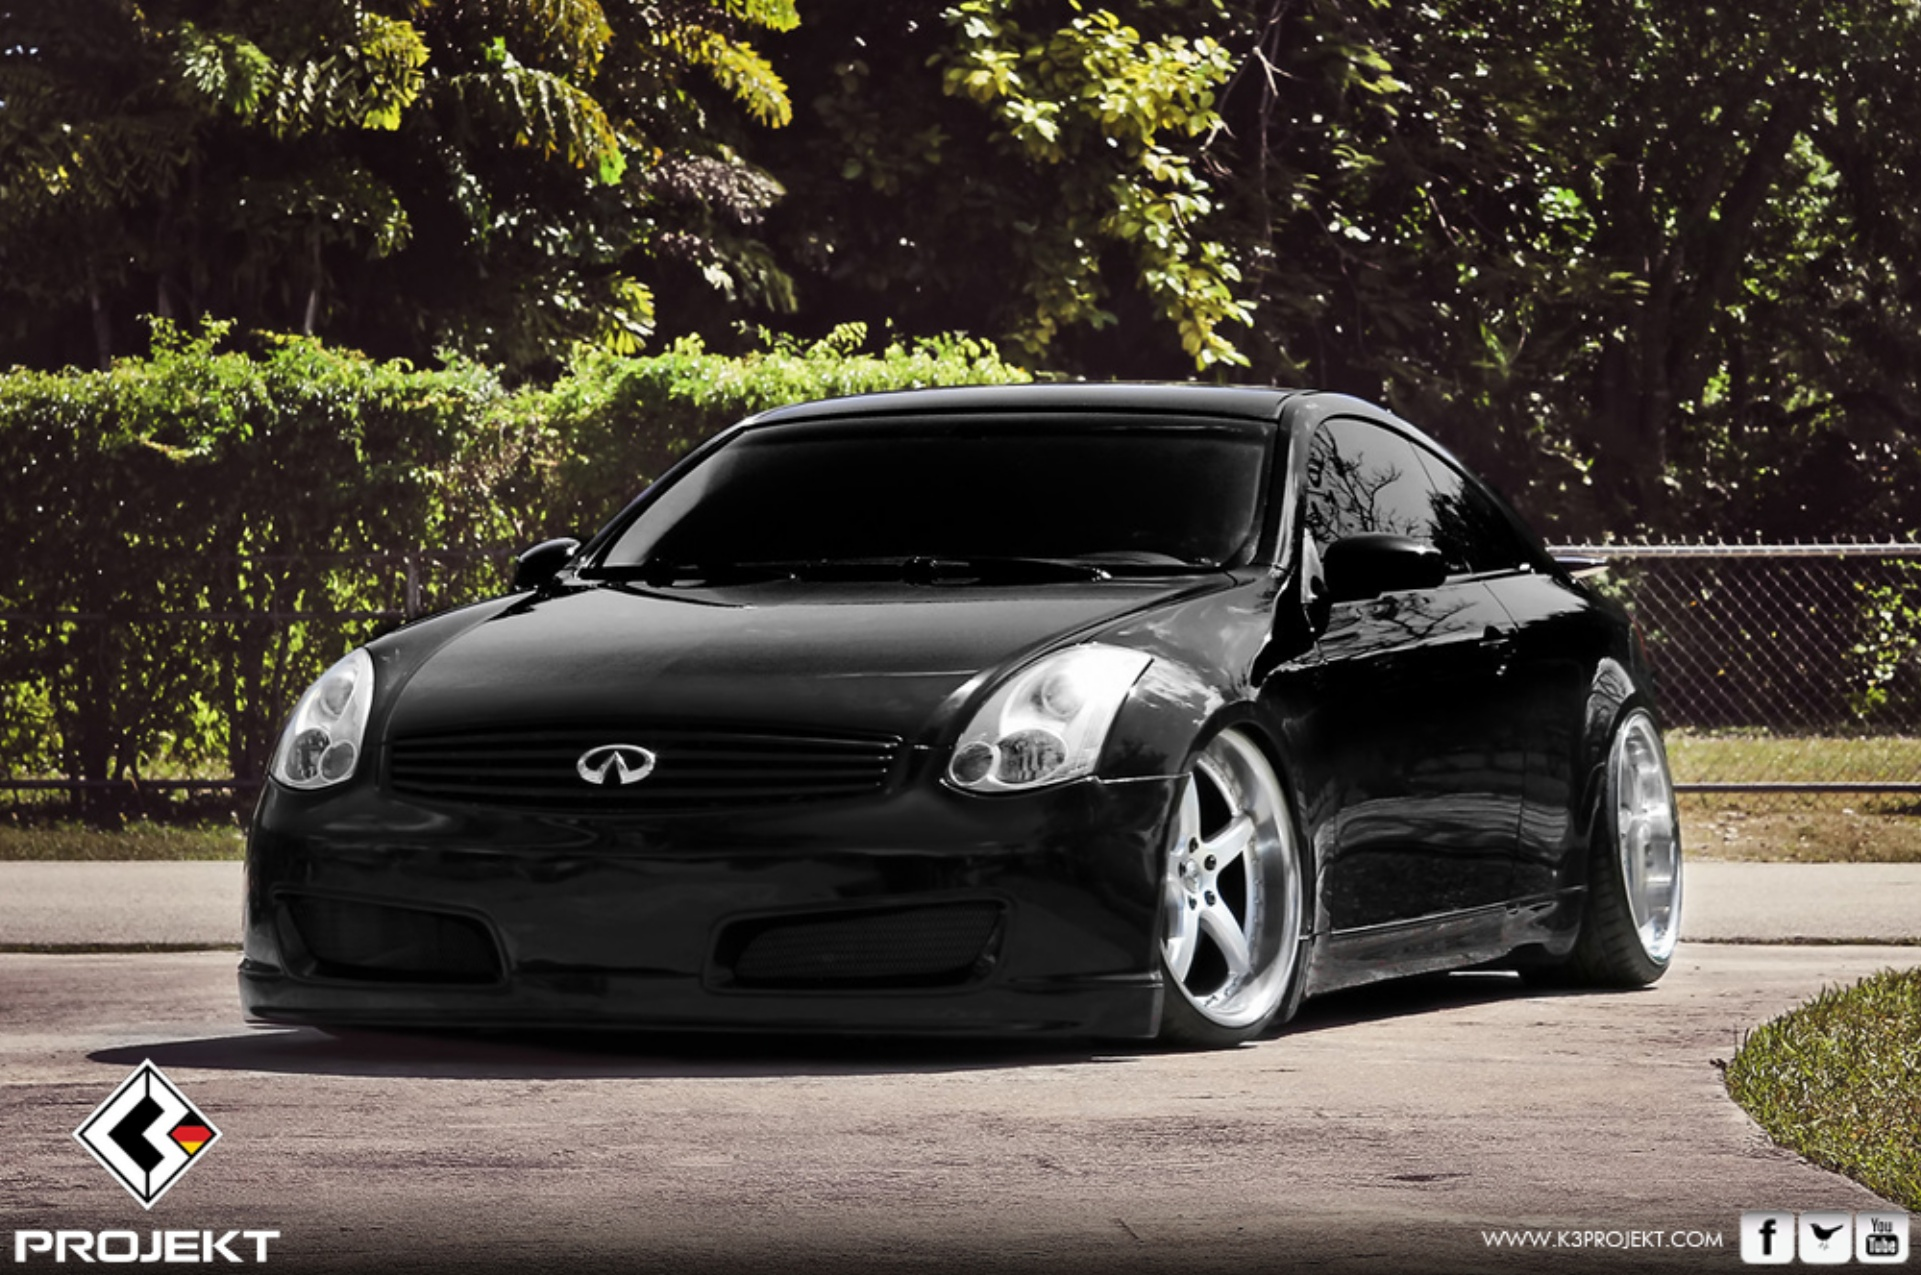 coupe trends sale images hot infiniti custom infinity for